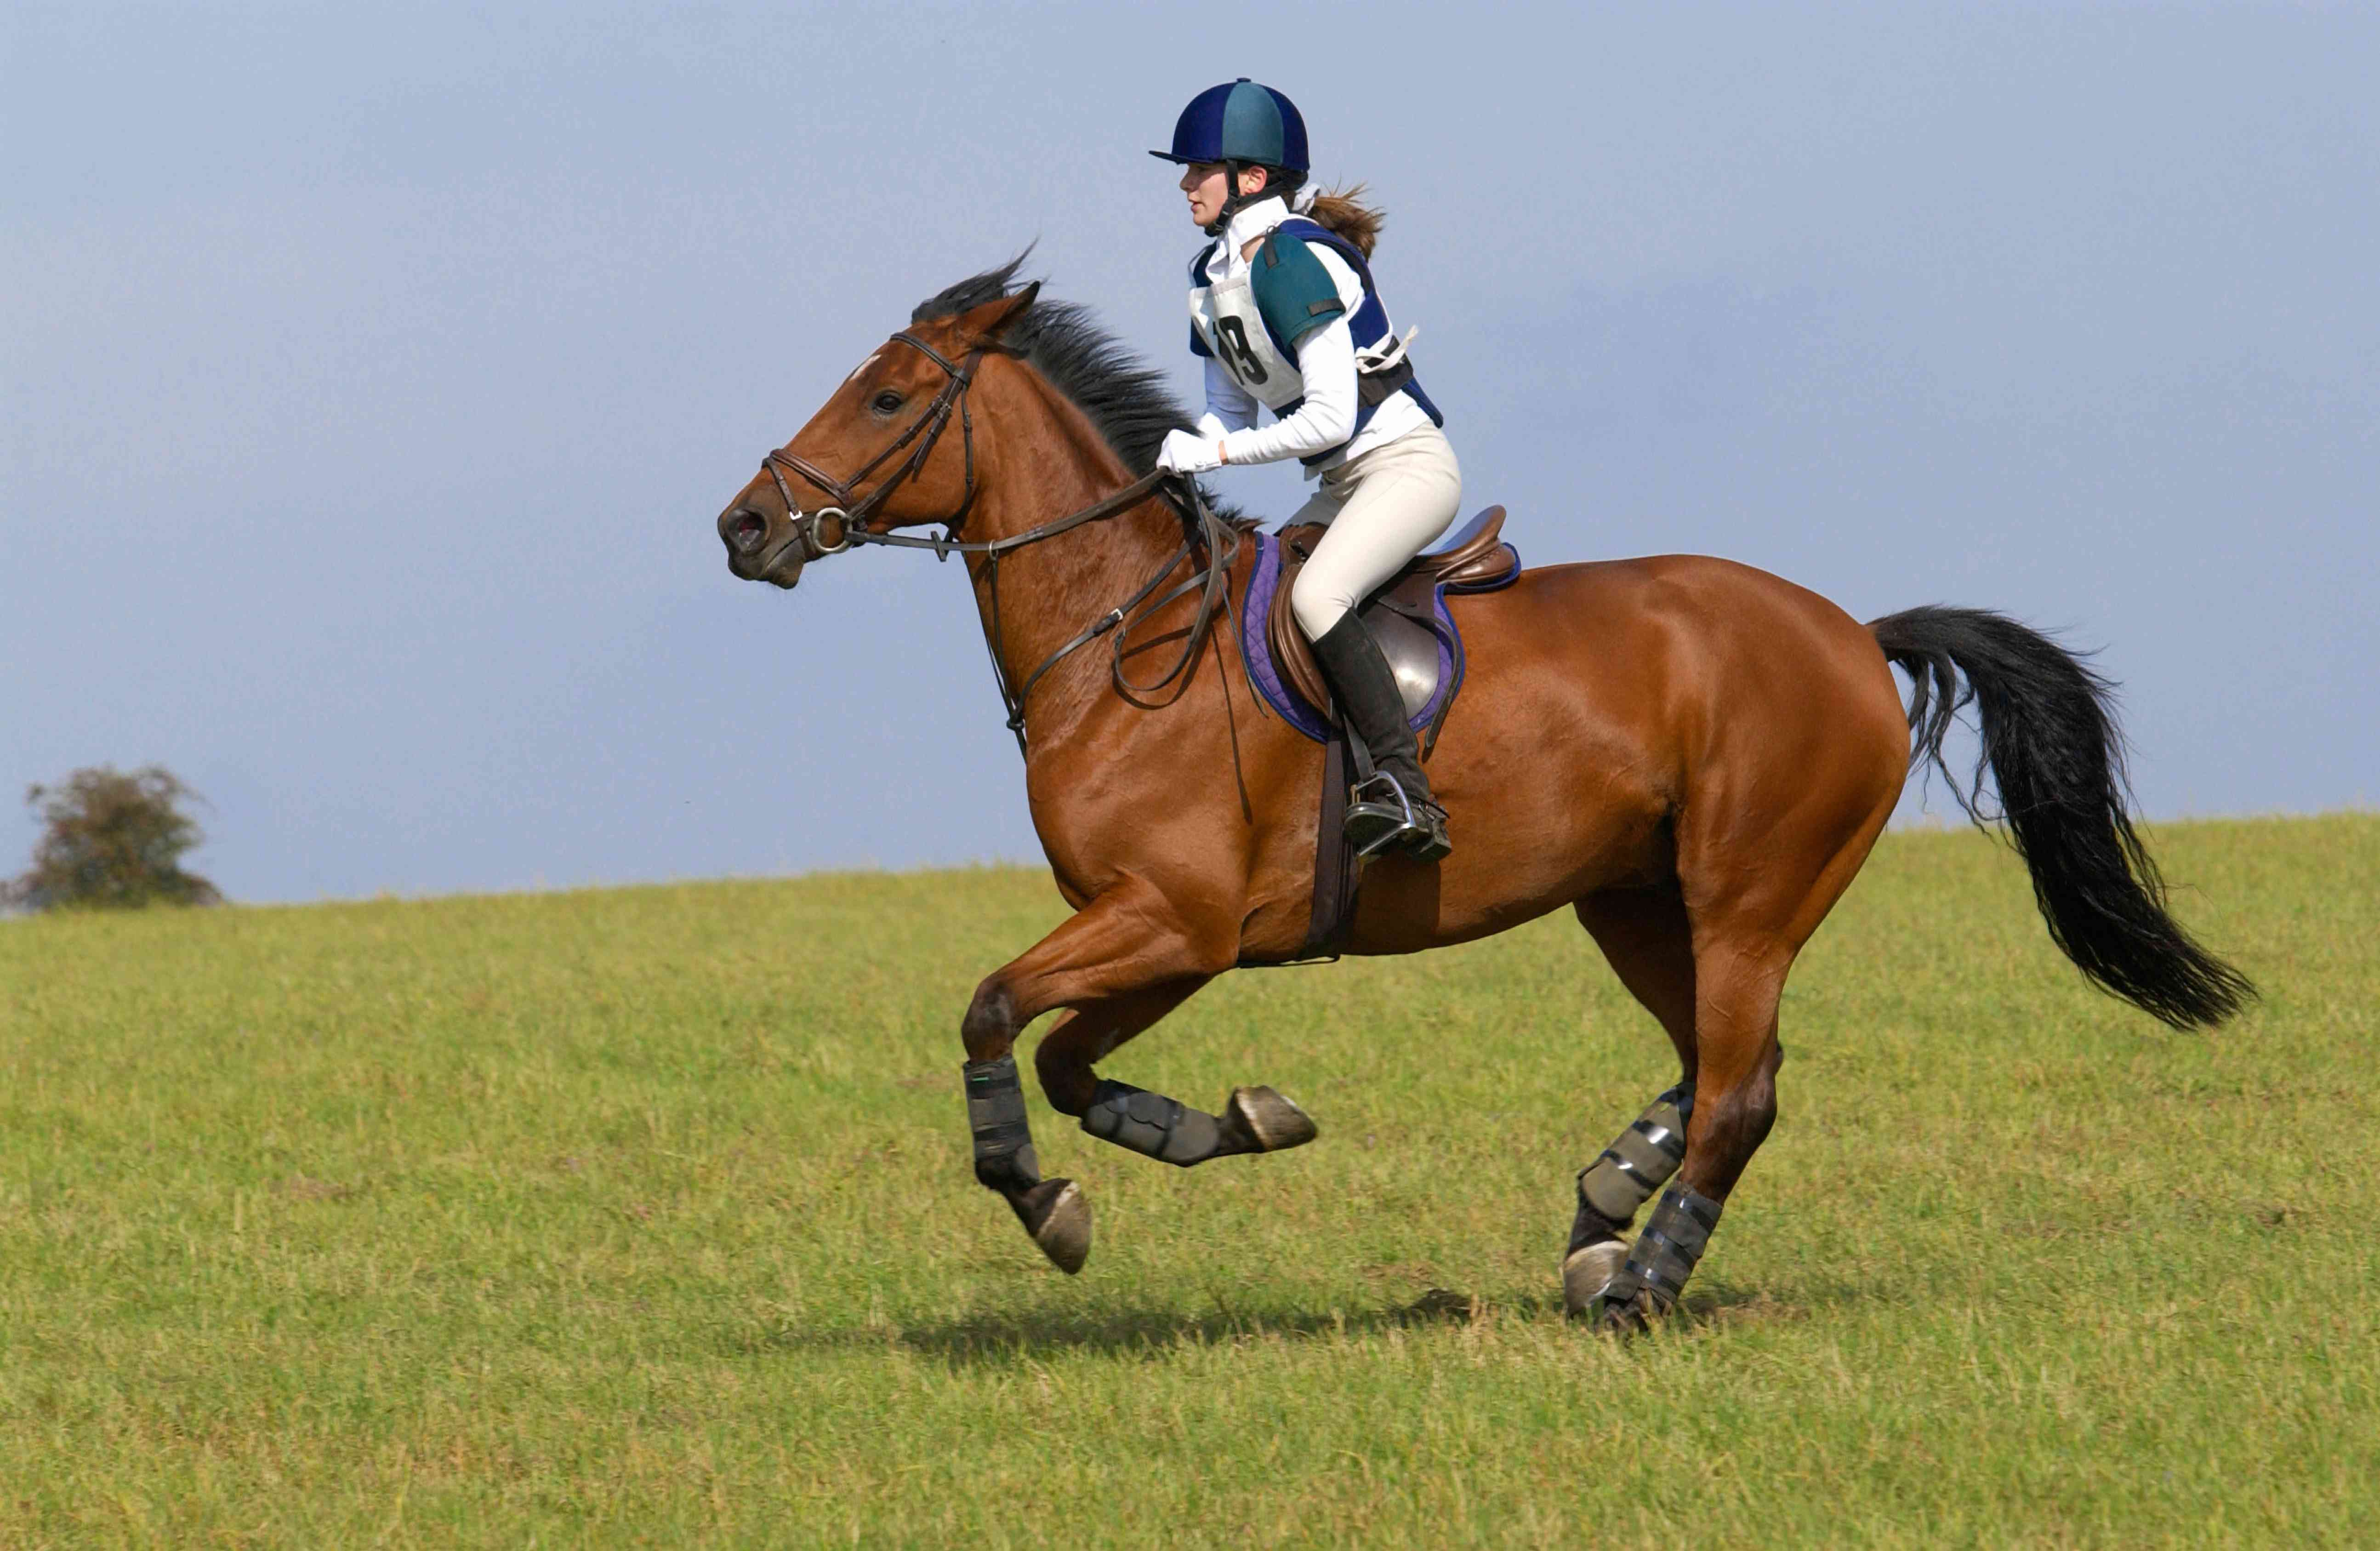 Cleveland Bay competing cross country in eventing